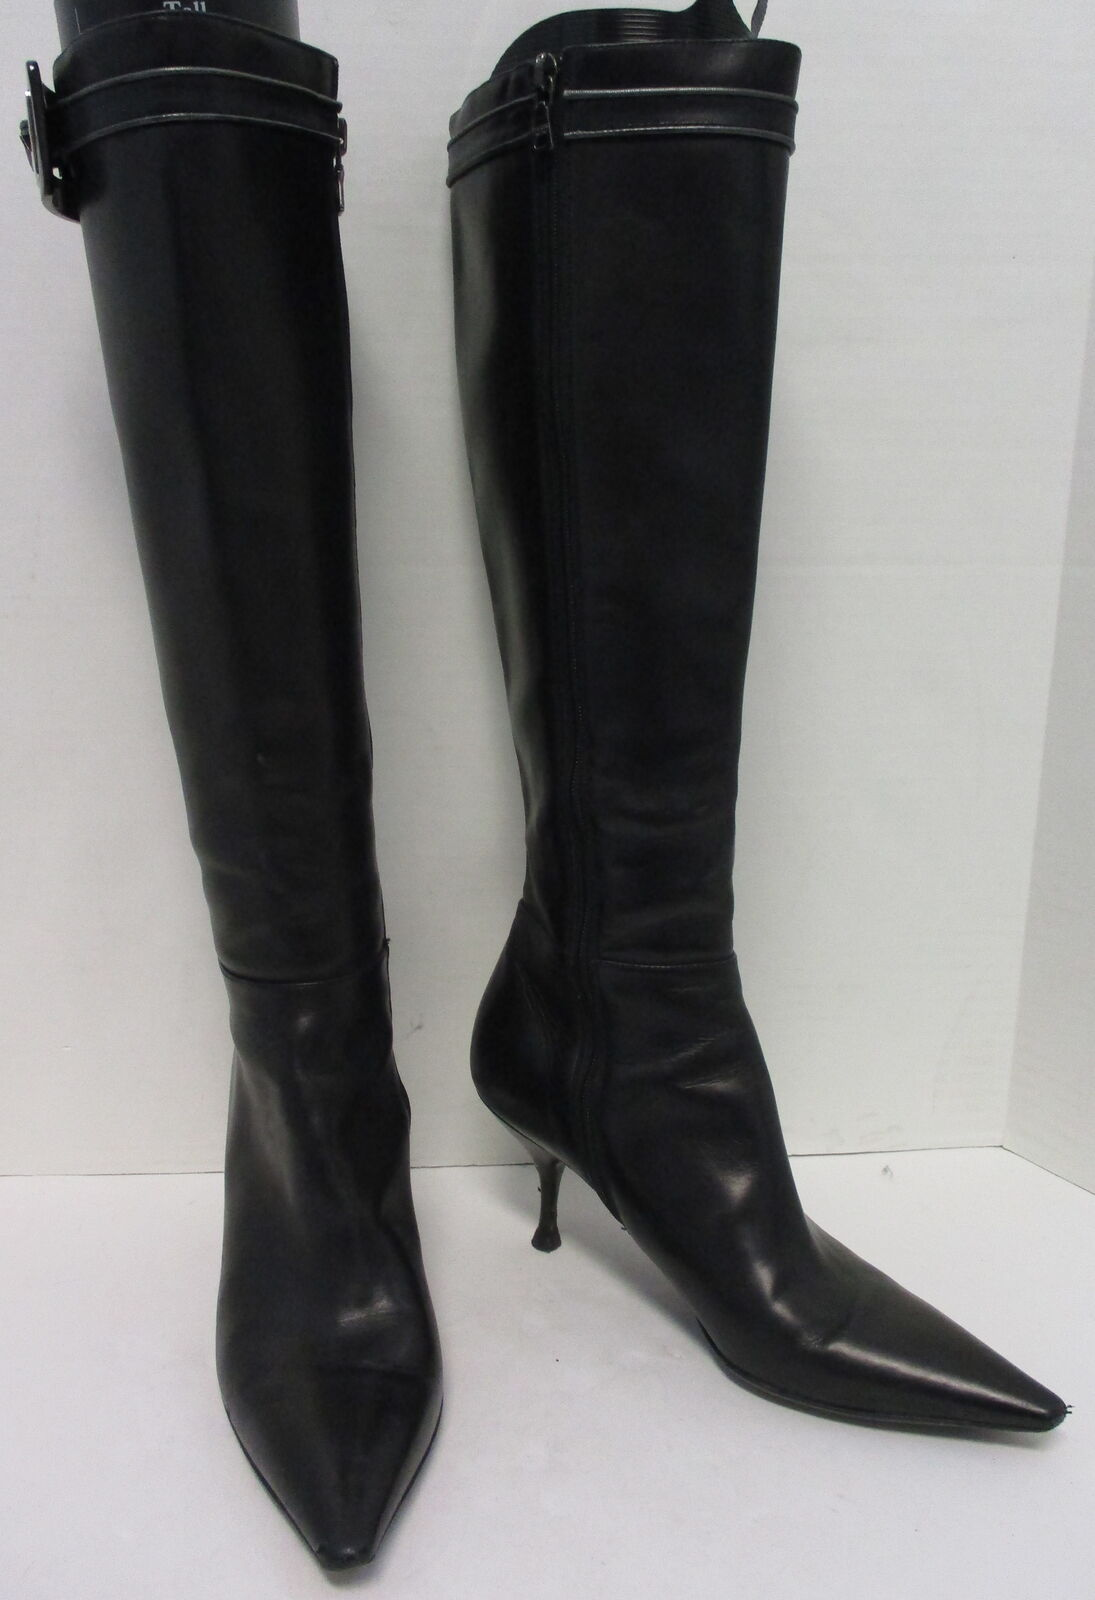 PRADA noir leather pointy toe mid slim heel buckle detail zip- up bottes sz 35